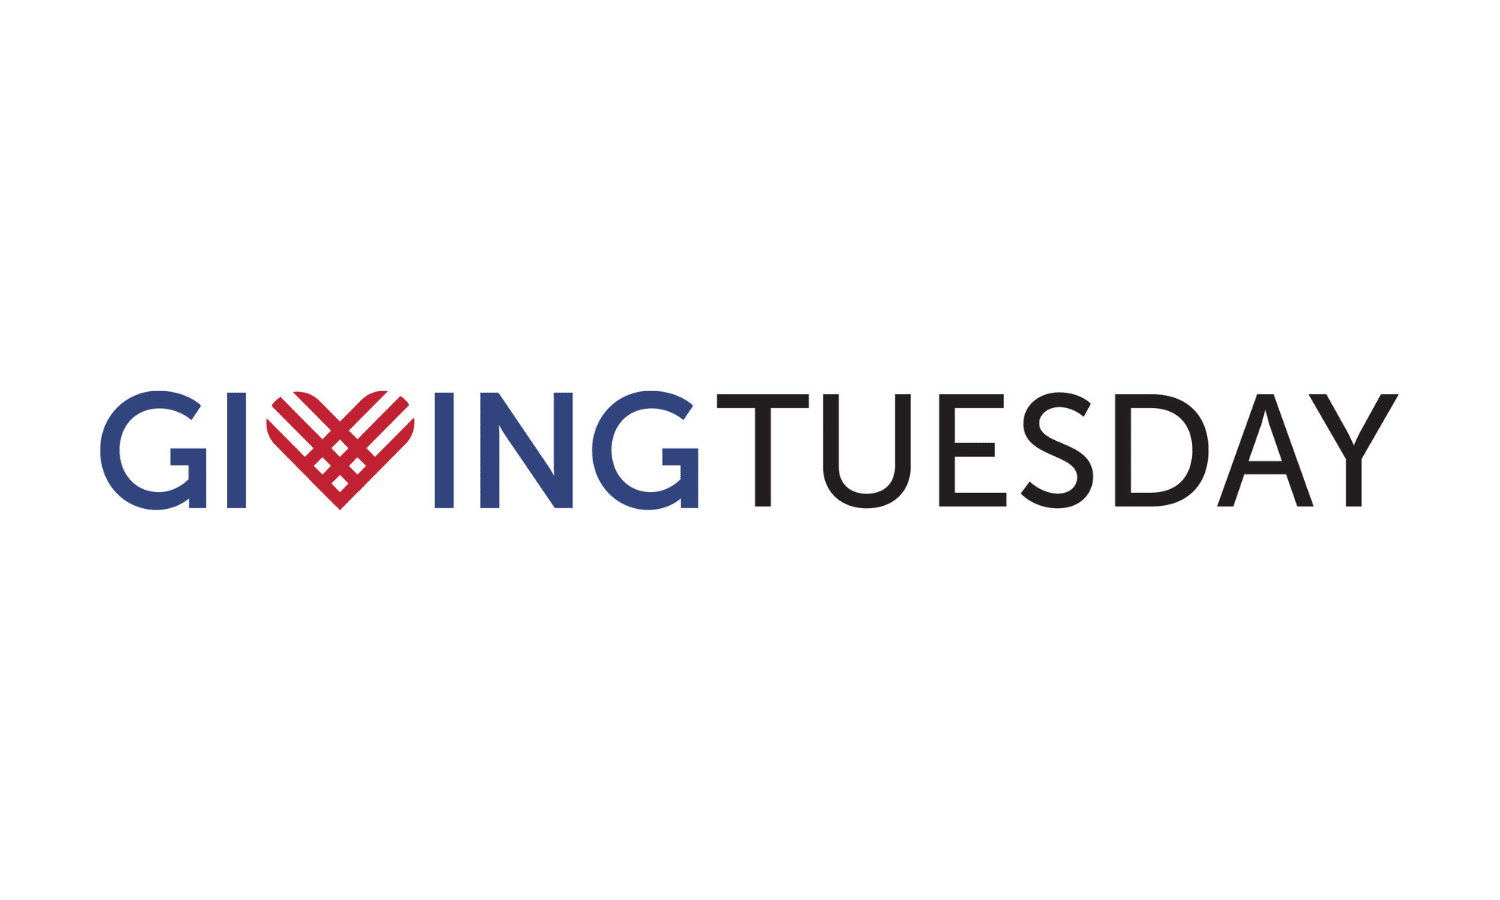 Giving Tuesday 2021: 5 tips for a successful fundraising campaign